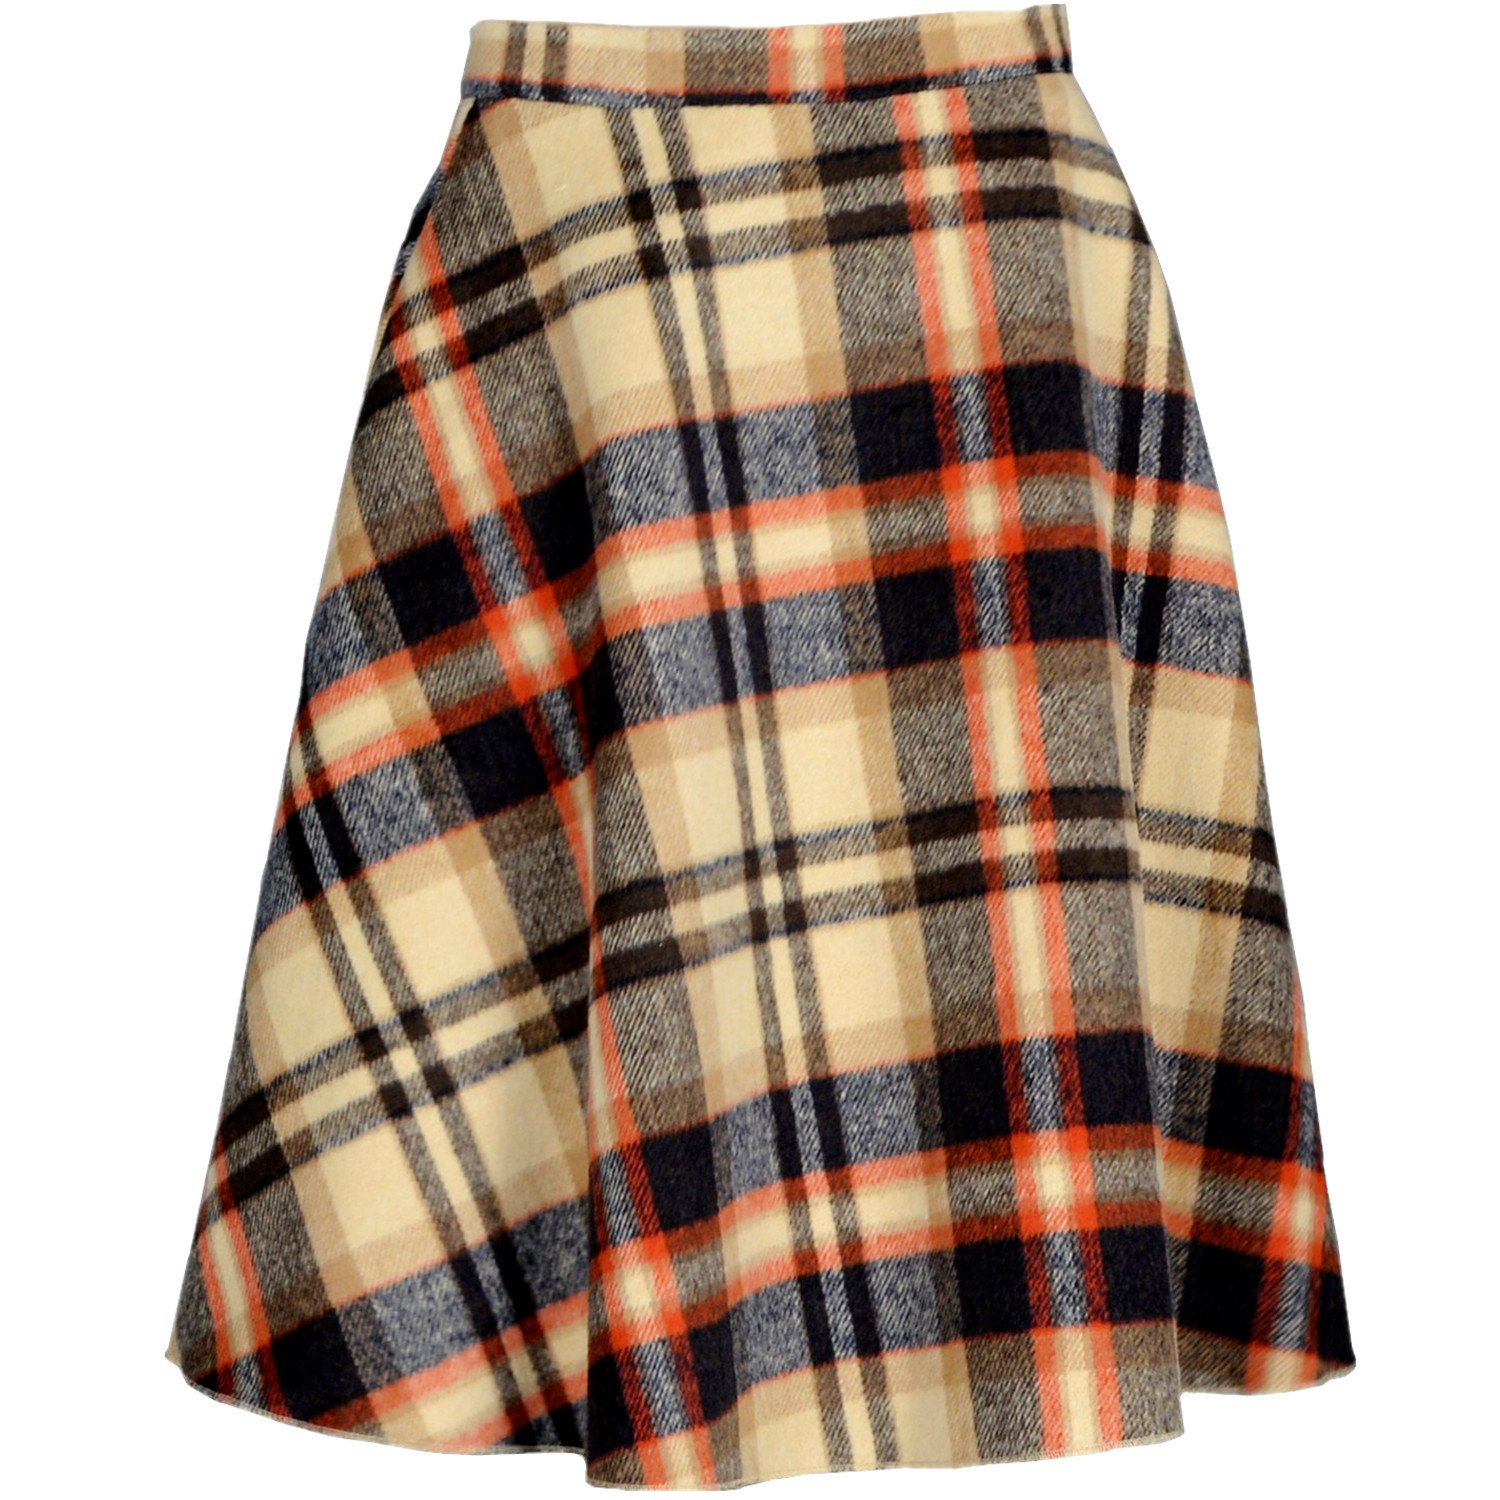 1960s Fashion: What Did Women Wear? YSJ Womens Wool Midi Skirt A-Line Pleated Vintage Plaid Winter Swing Skirts  AT vintagedancer.com